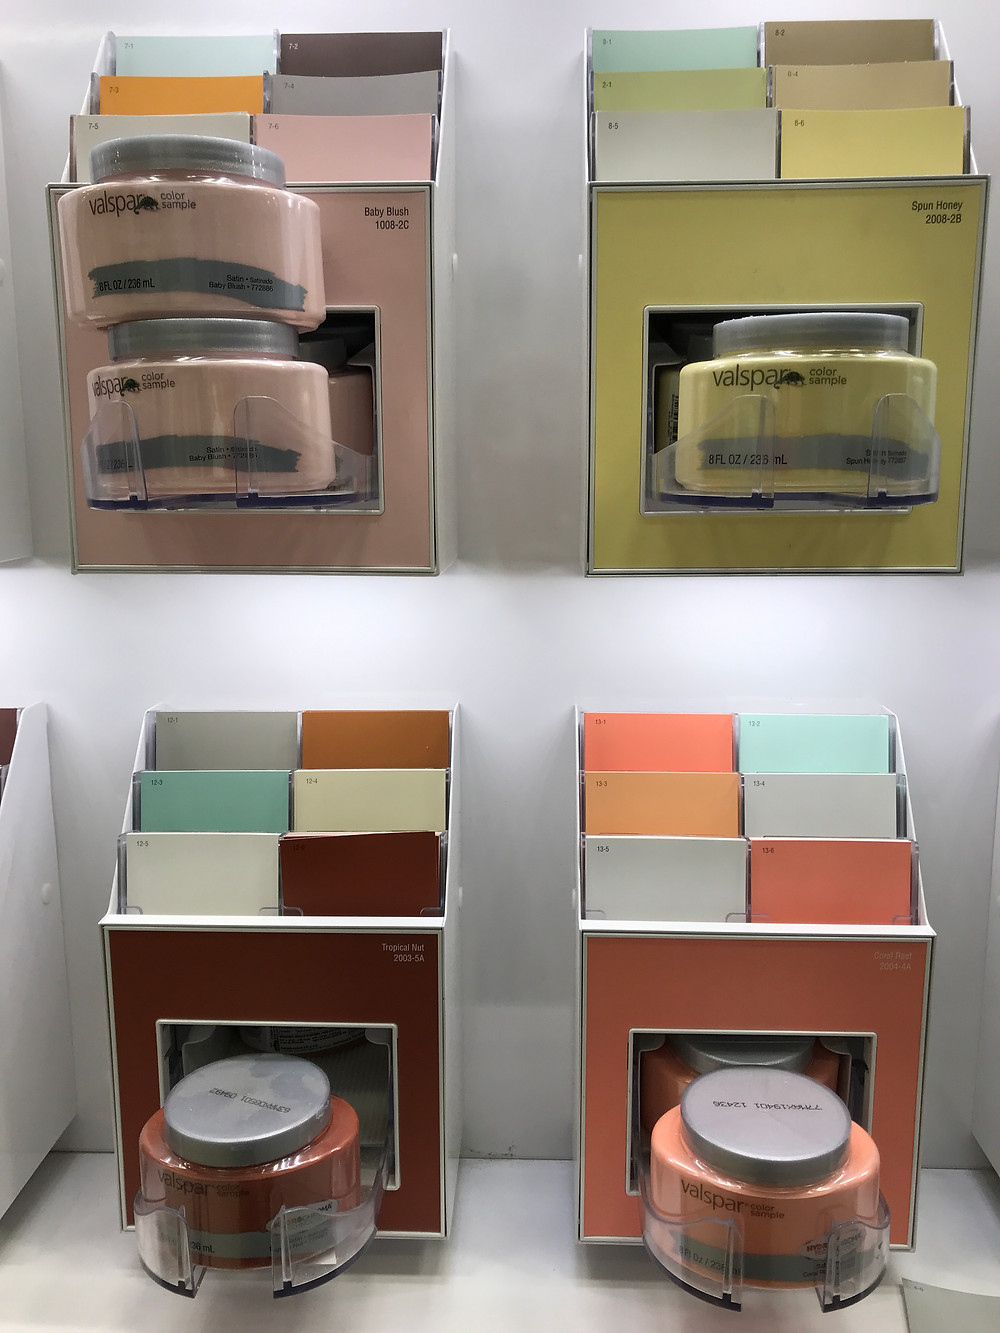 Valspar paint company offers interior wall paint in grab and go testers